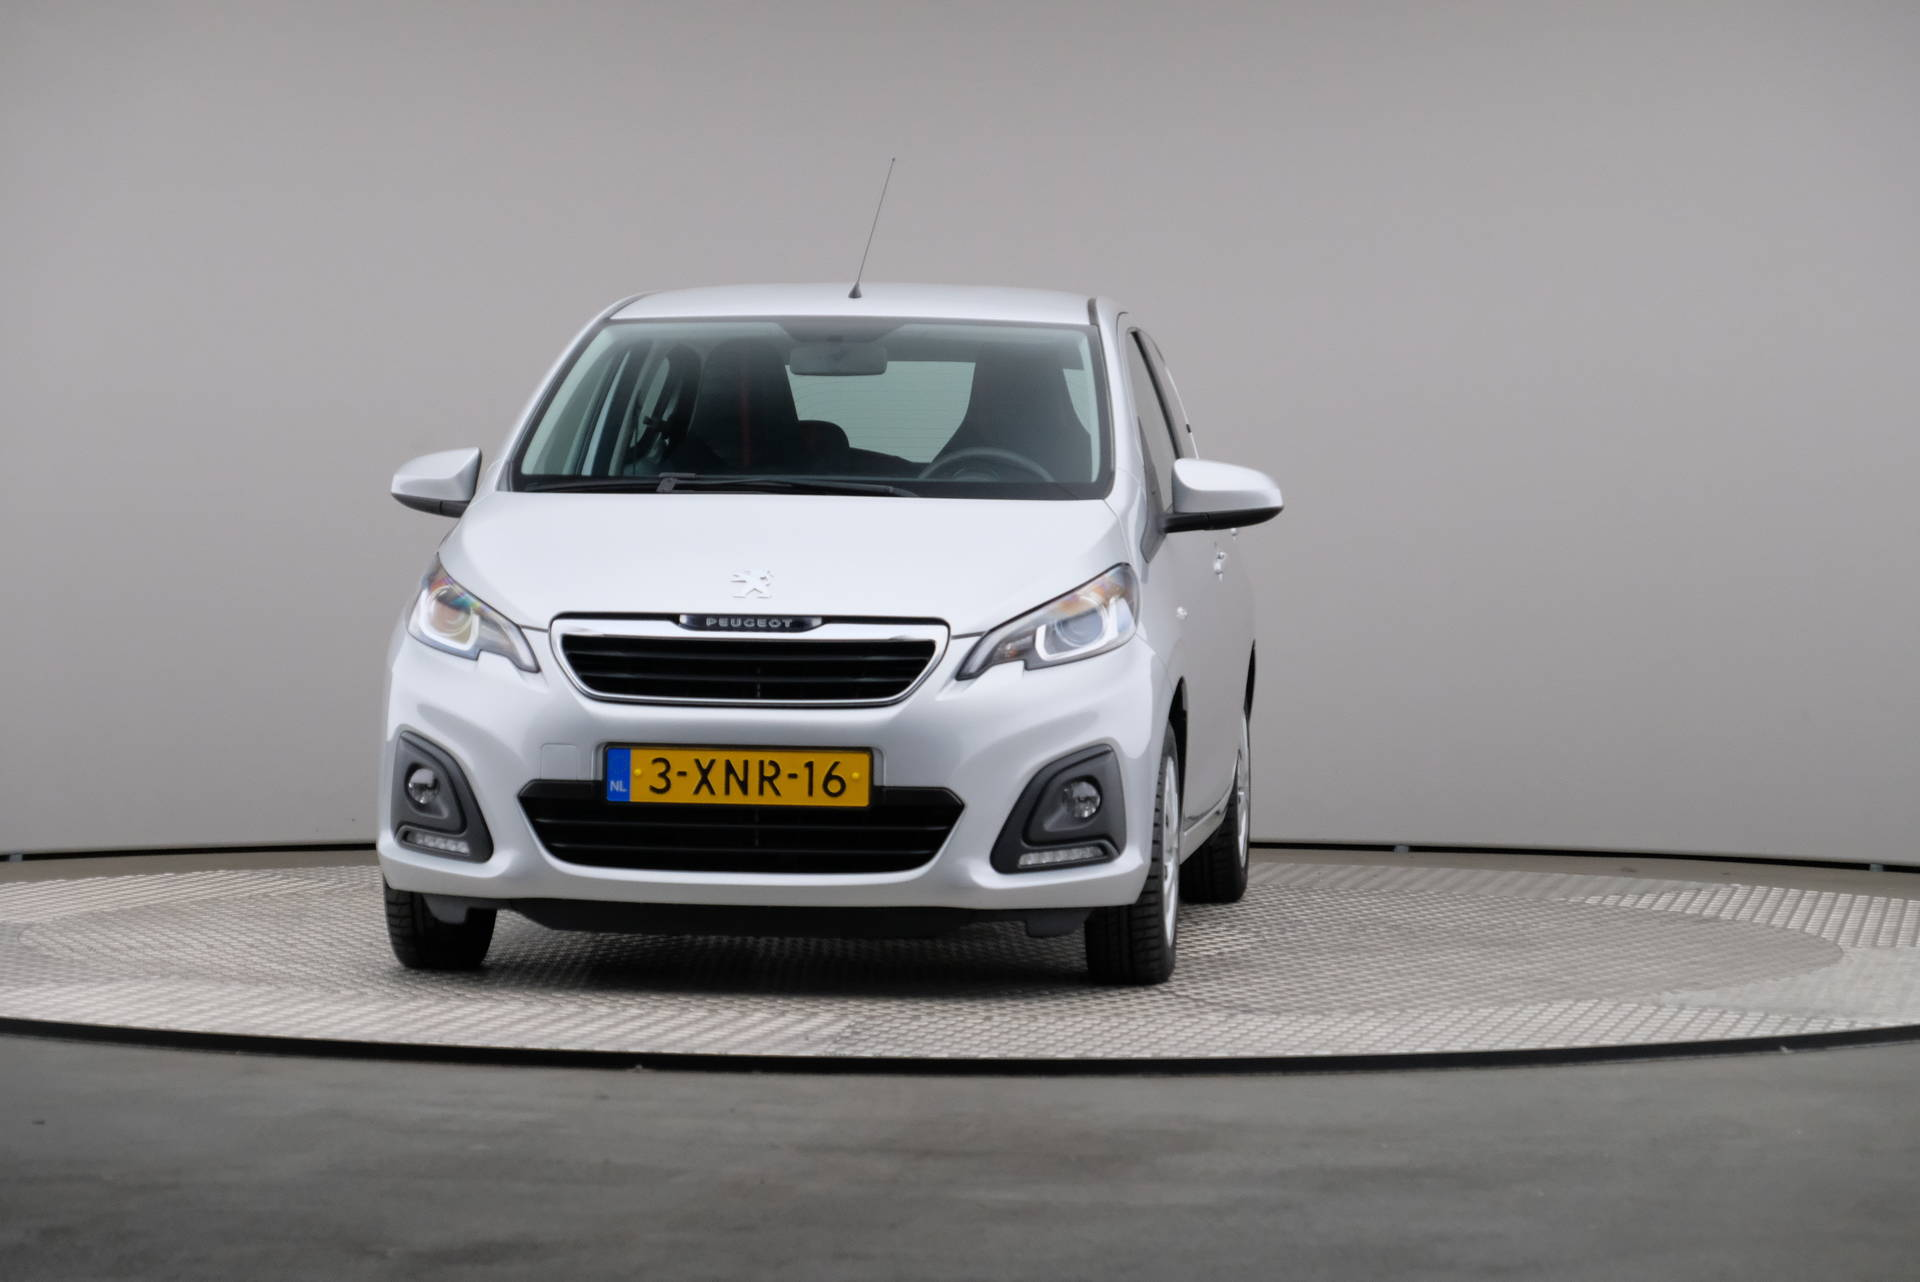 Peugeot 108 1.0 e-VTi Blue Lease, Airconditioning, 360-image33